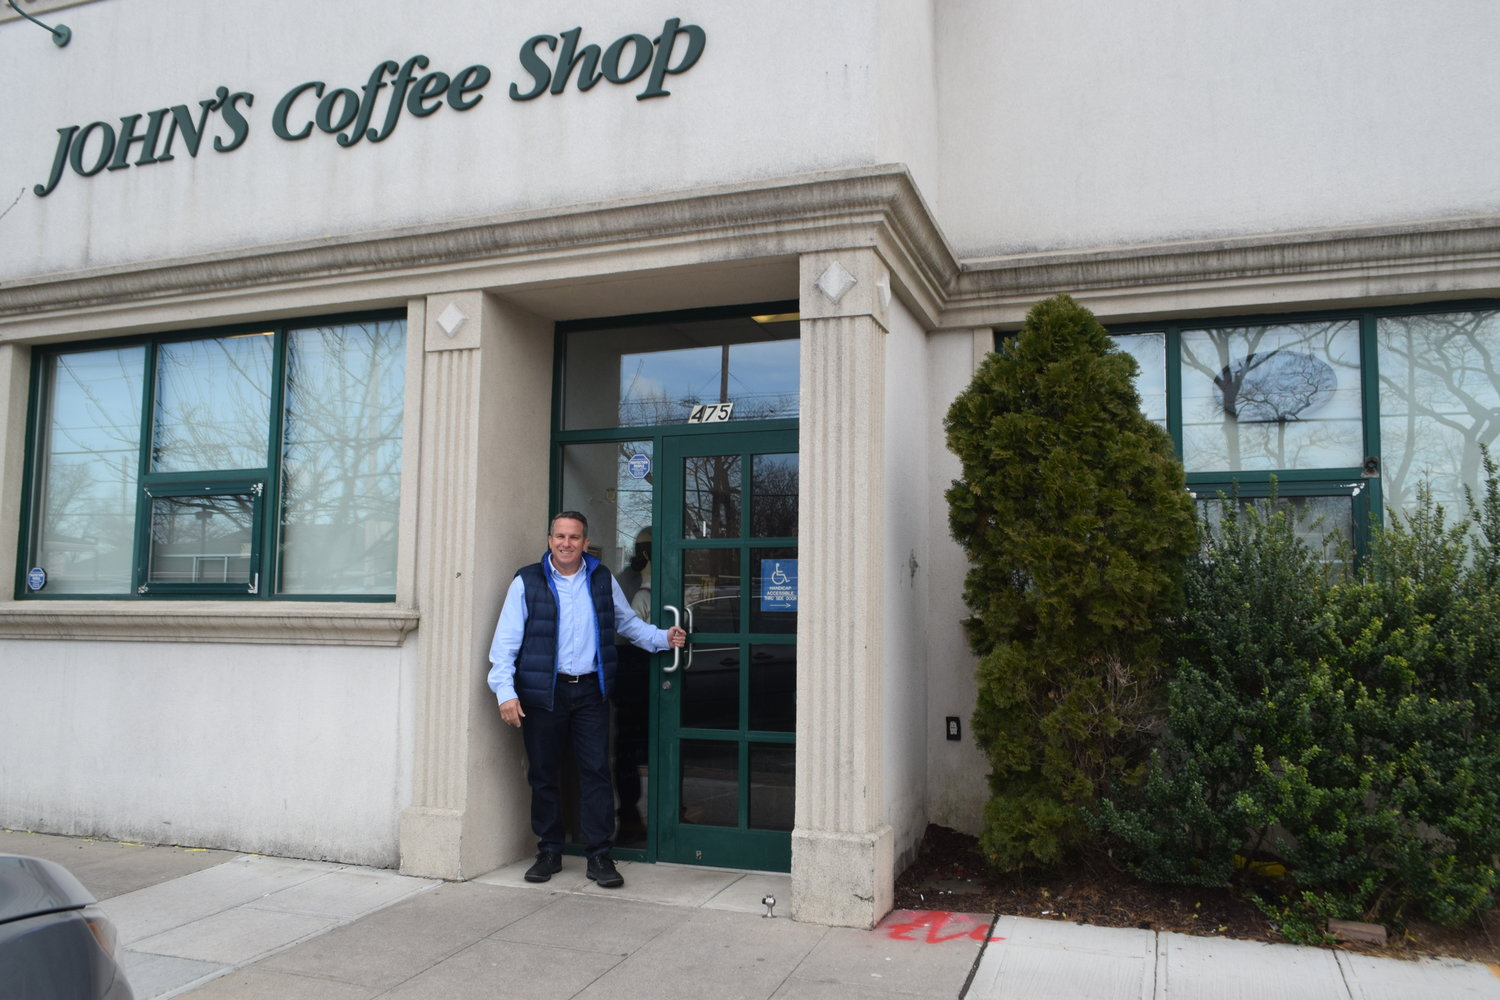 Mark Friedman closed the door on John's Coffee Shop after nearly 13 years.